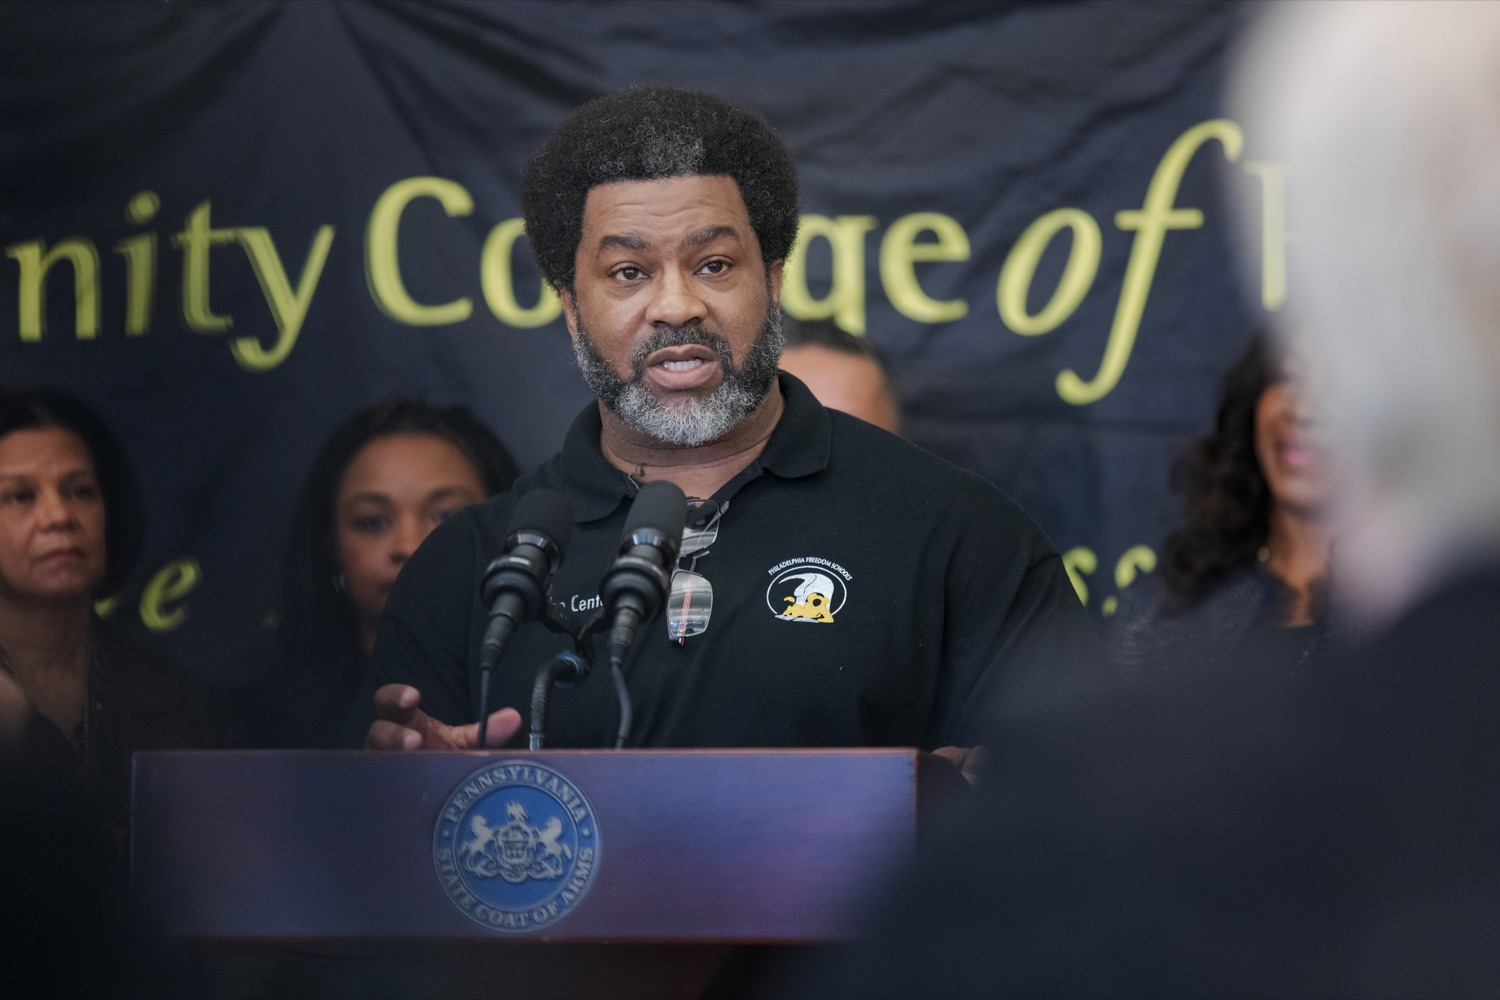 "<a href=""http://filesource.abacast.com/commonwealthofpa/photo/17592_EDU_Aspiring_NK_015.JPG"" target=""_blank"">⇣ Download Photo<br></a>Sharif El-Mekki, founder of the Center for Black Educator Development, speaks during a press conference, announcing the School District of Philadelphia's new pilot program, Aspiring to Educate, that aims to cultivate and diversify the citys educator pool, inside Community College of Philadelphia's Center for Business and Industry on Wednesday, November 20, 2019."